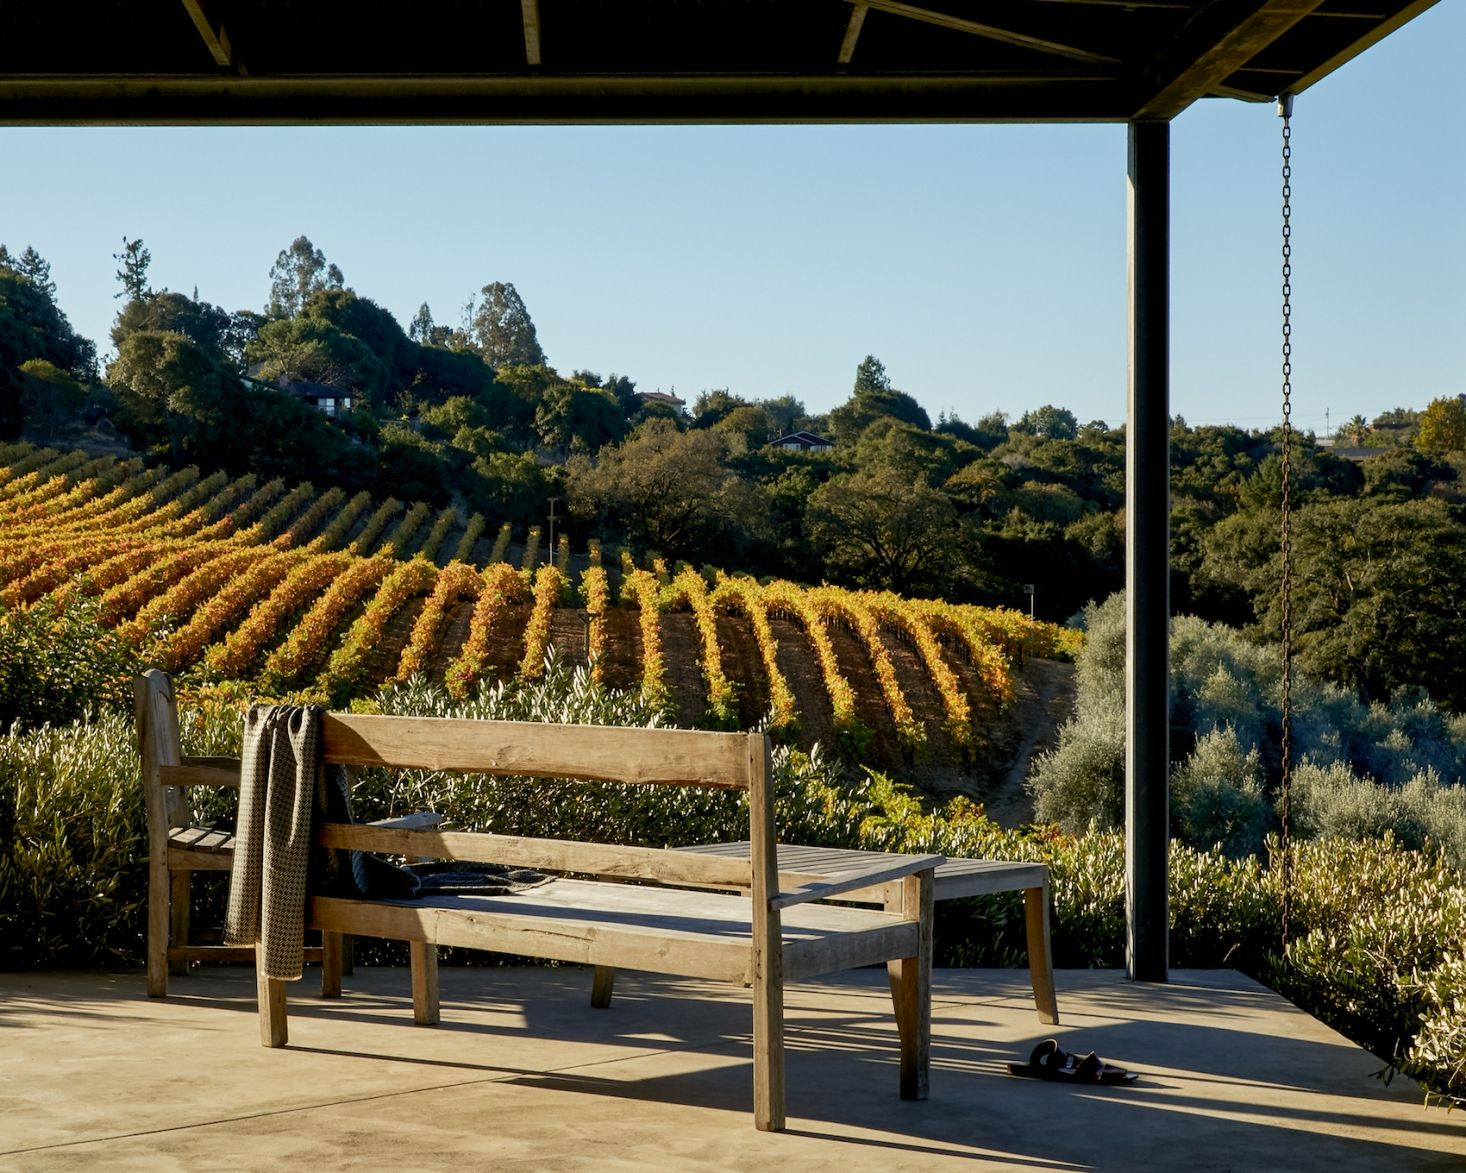 The Winemaker\'s Life: A Garden Idyll in Northern California | Gardens